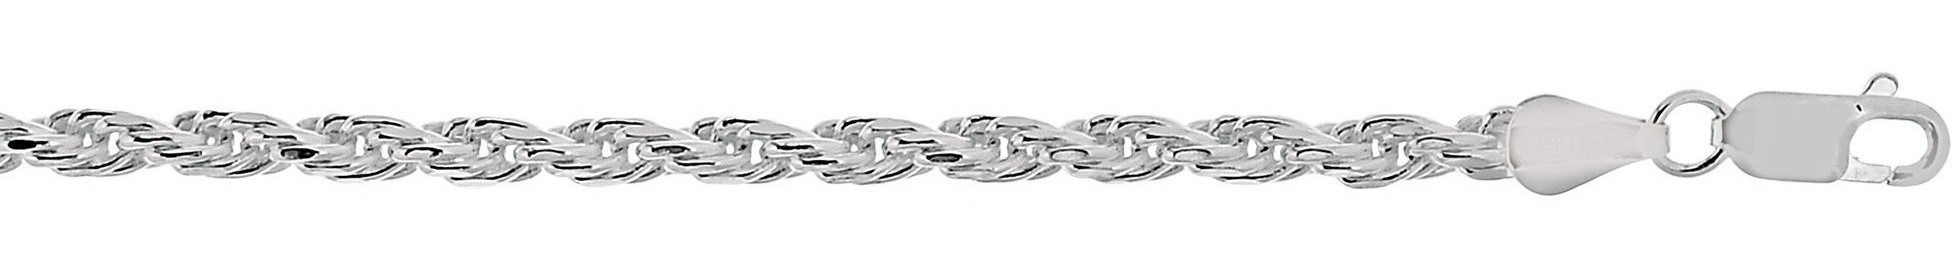 "20"" 3.6mm (1/7"") Rhodium Plated Polished Diamond Cut 925 Sterling Silver Rope Chain w/ Lobster Clasp"